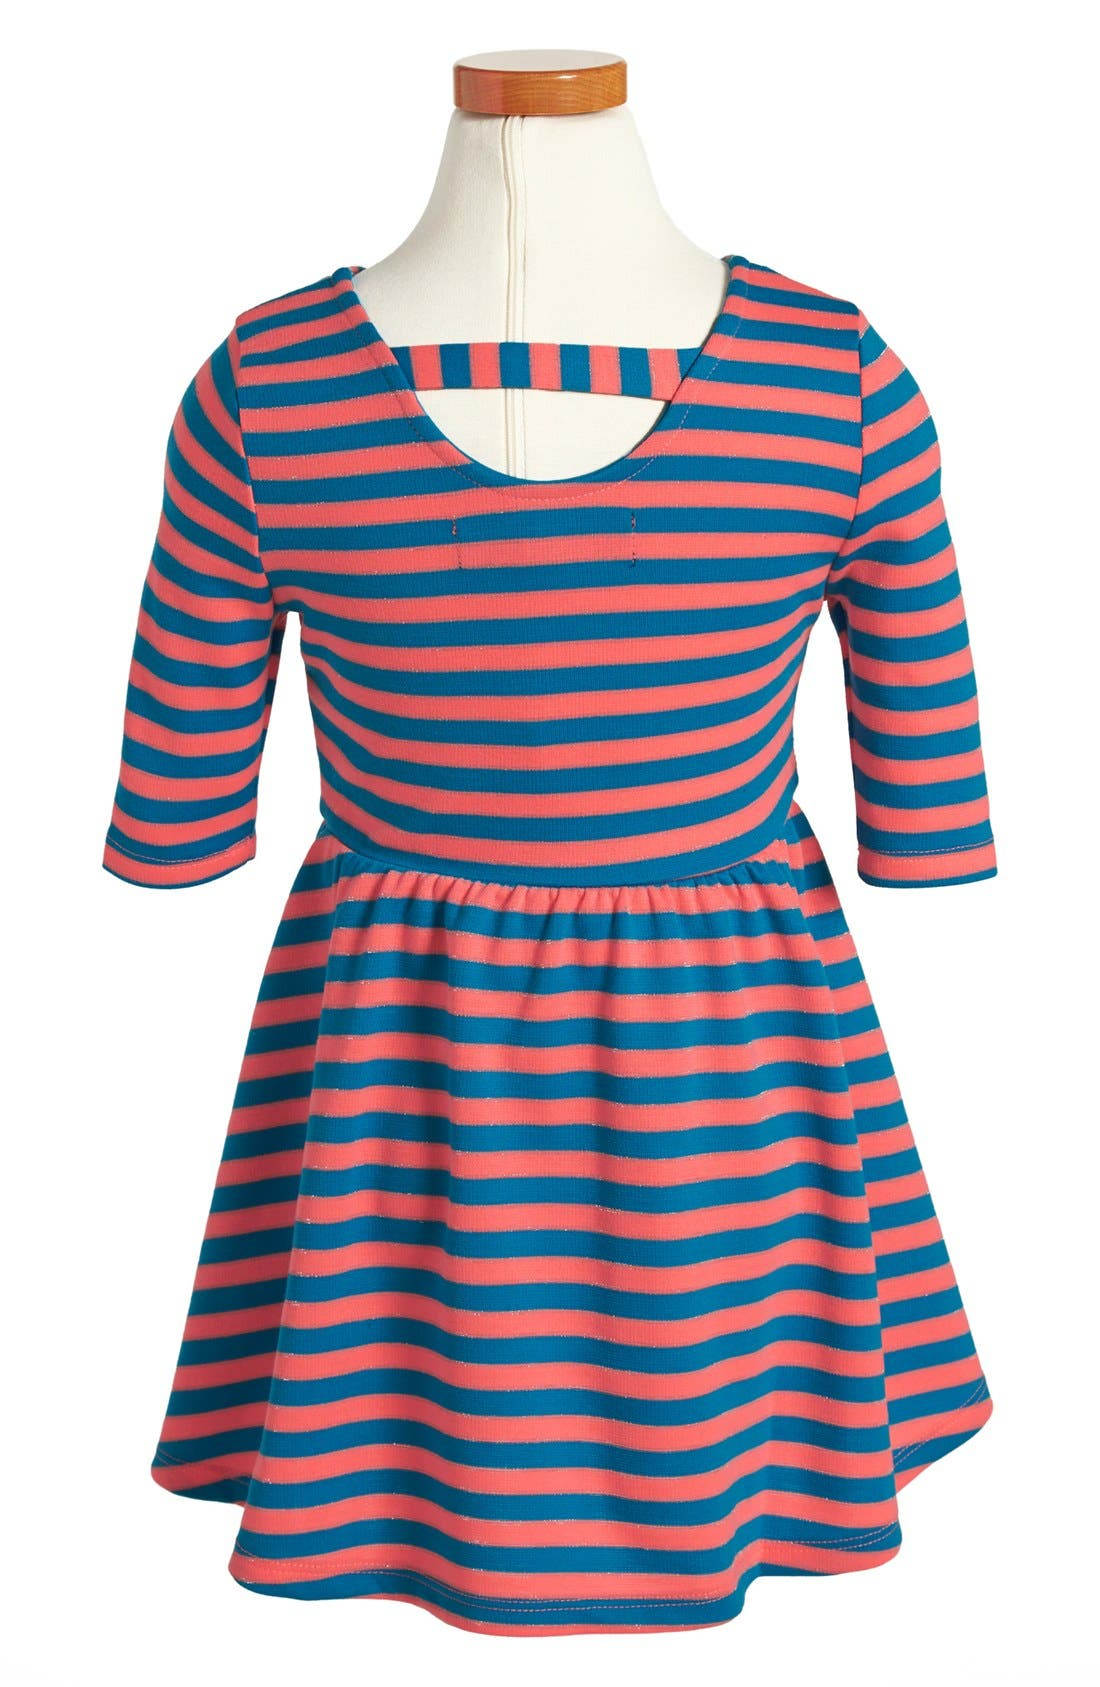 Alternate Image 2  - Weavers Stripe Ponte Three Quarter Sleeve Dress (Toddler Girls)